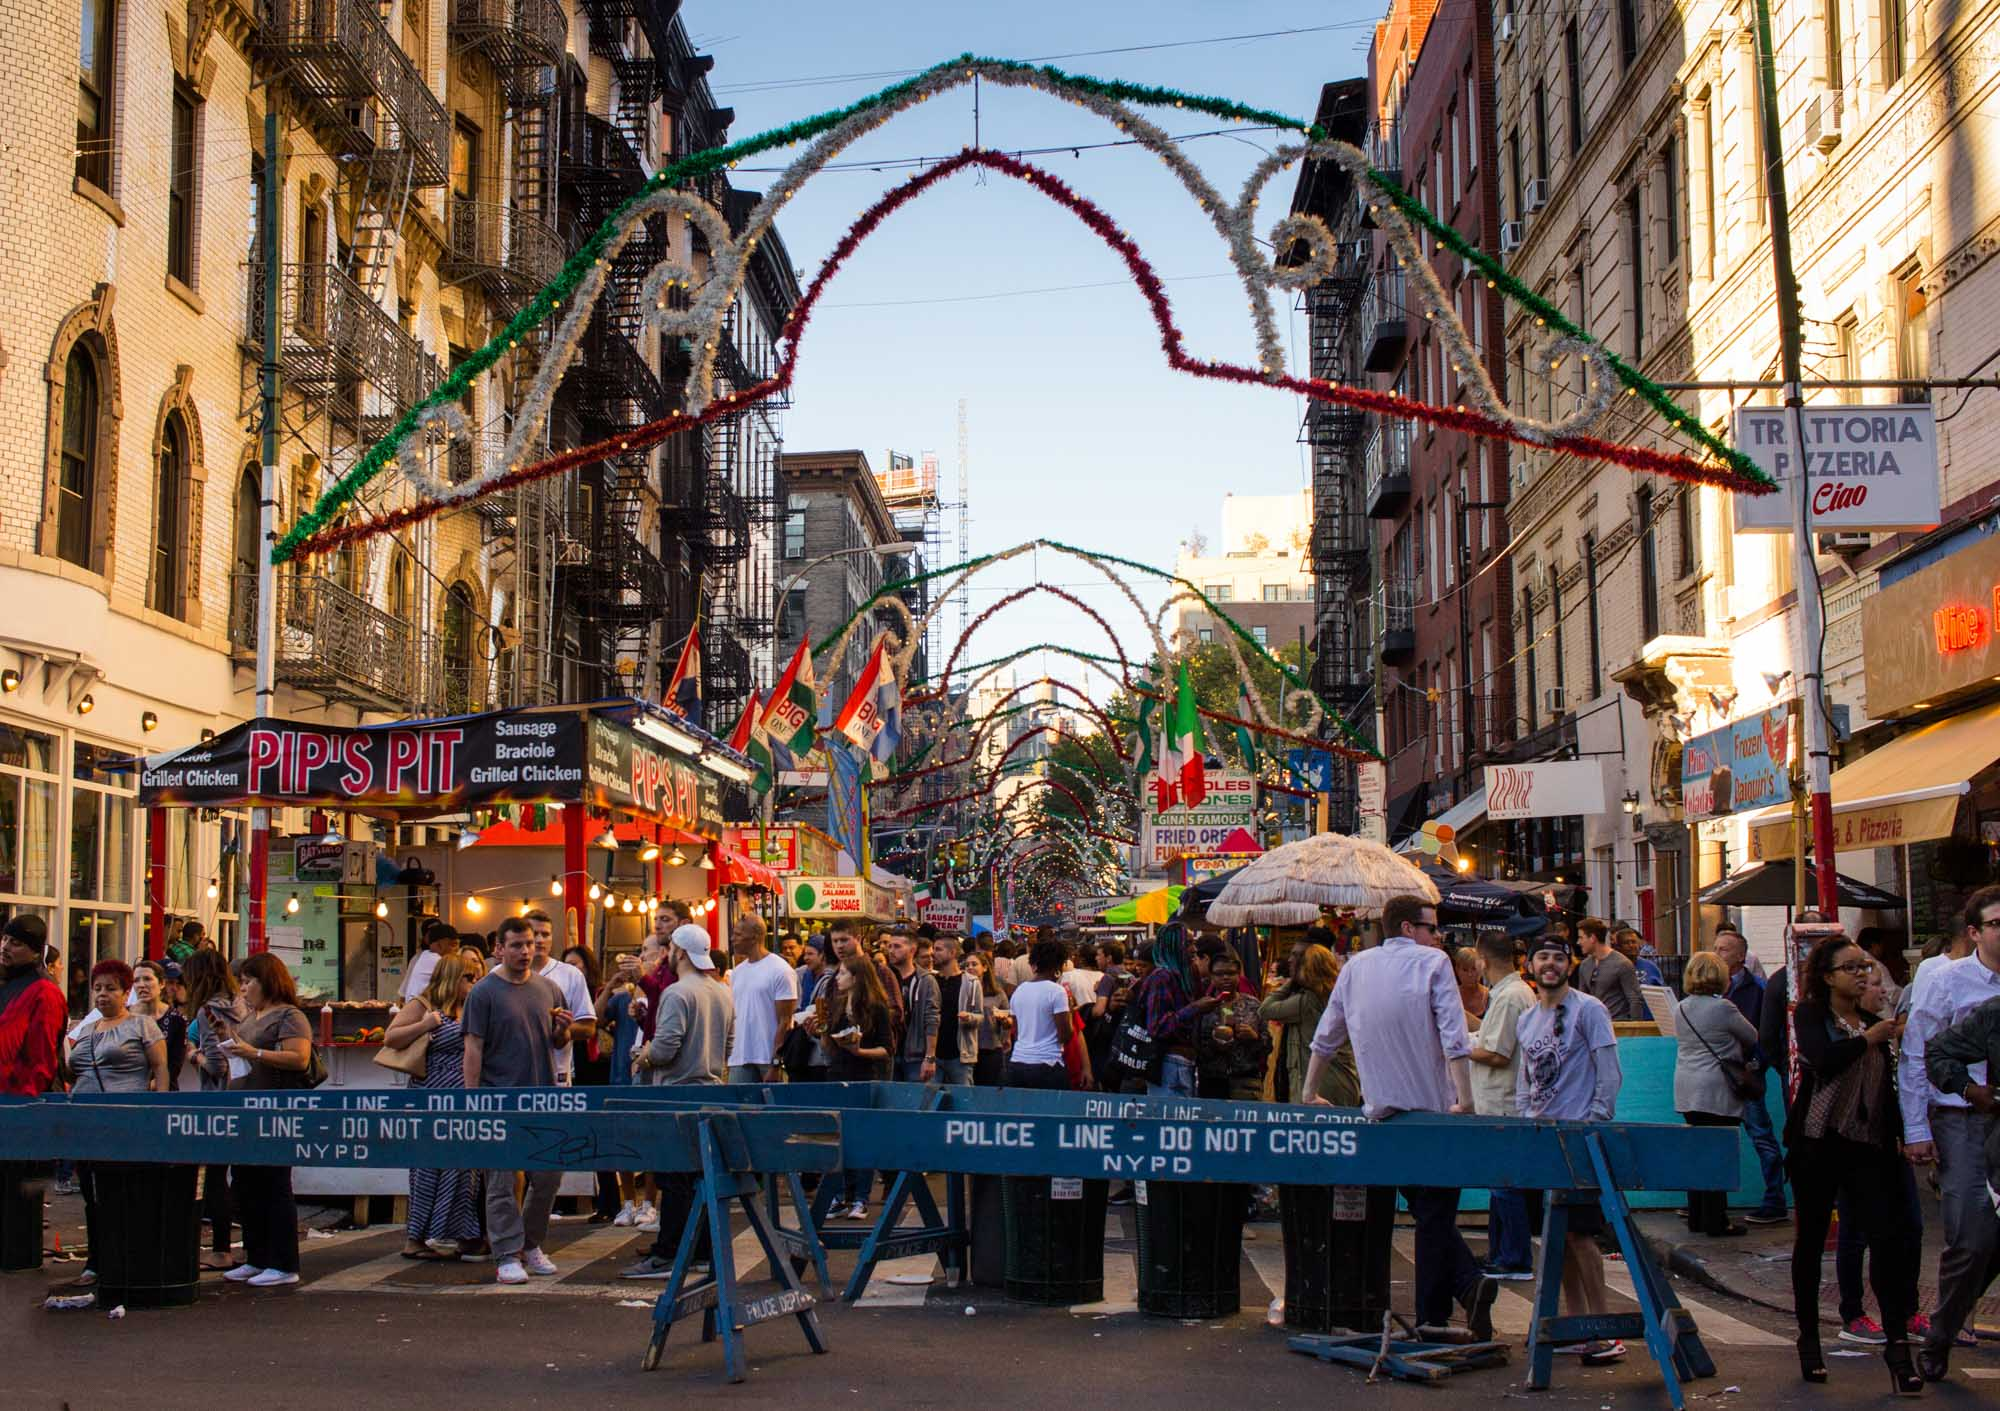 The San Gennaro festival in Little Italy